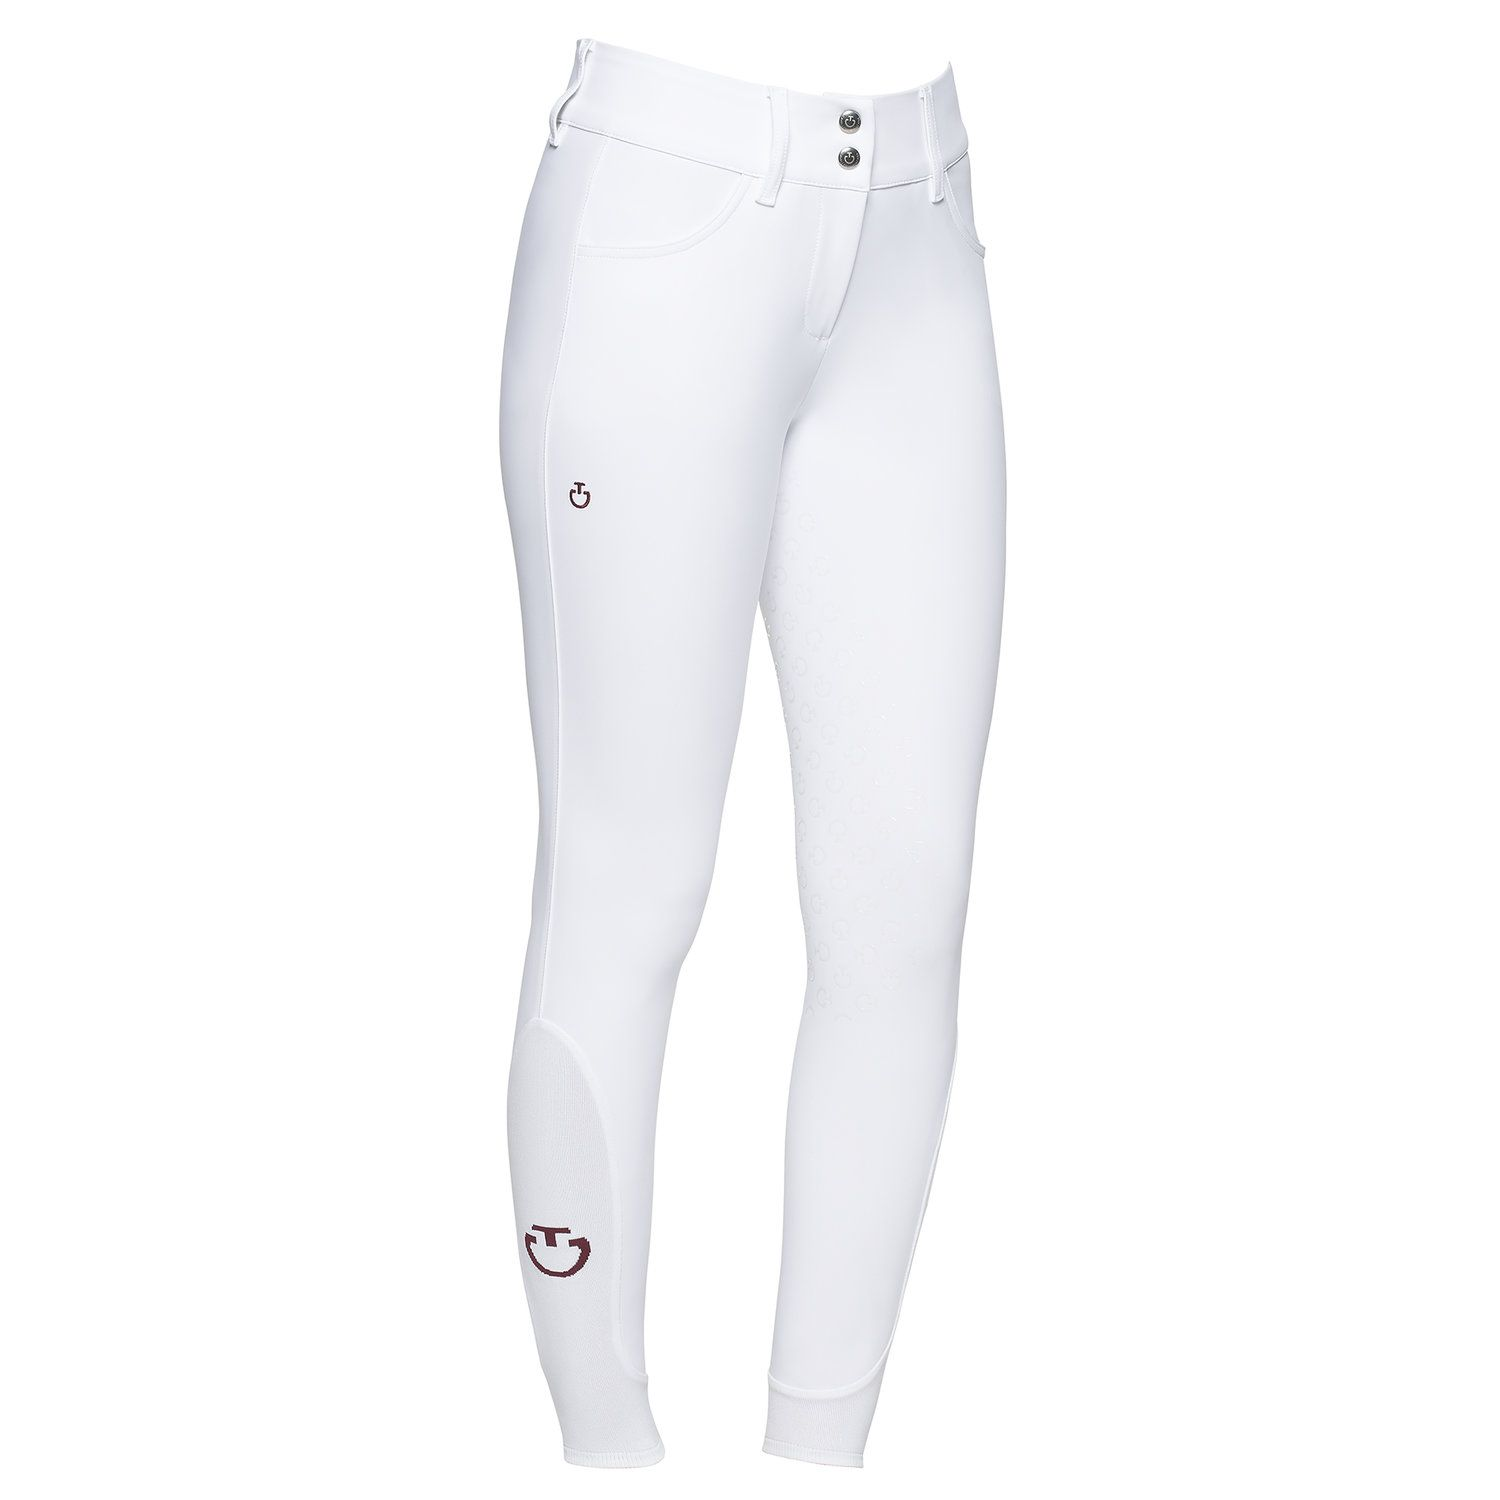 Pantaloni dressage donna full grip